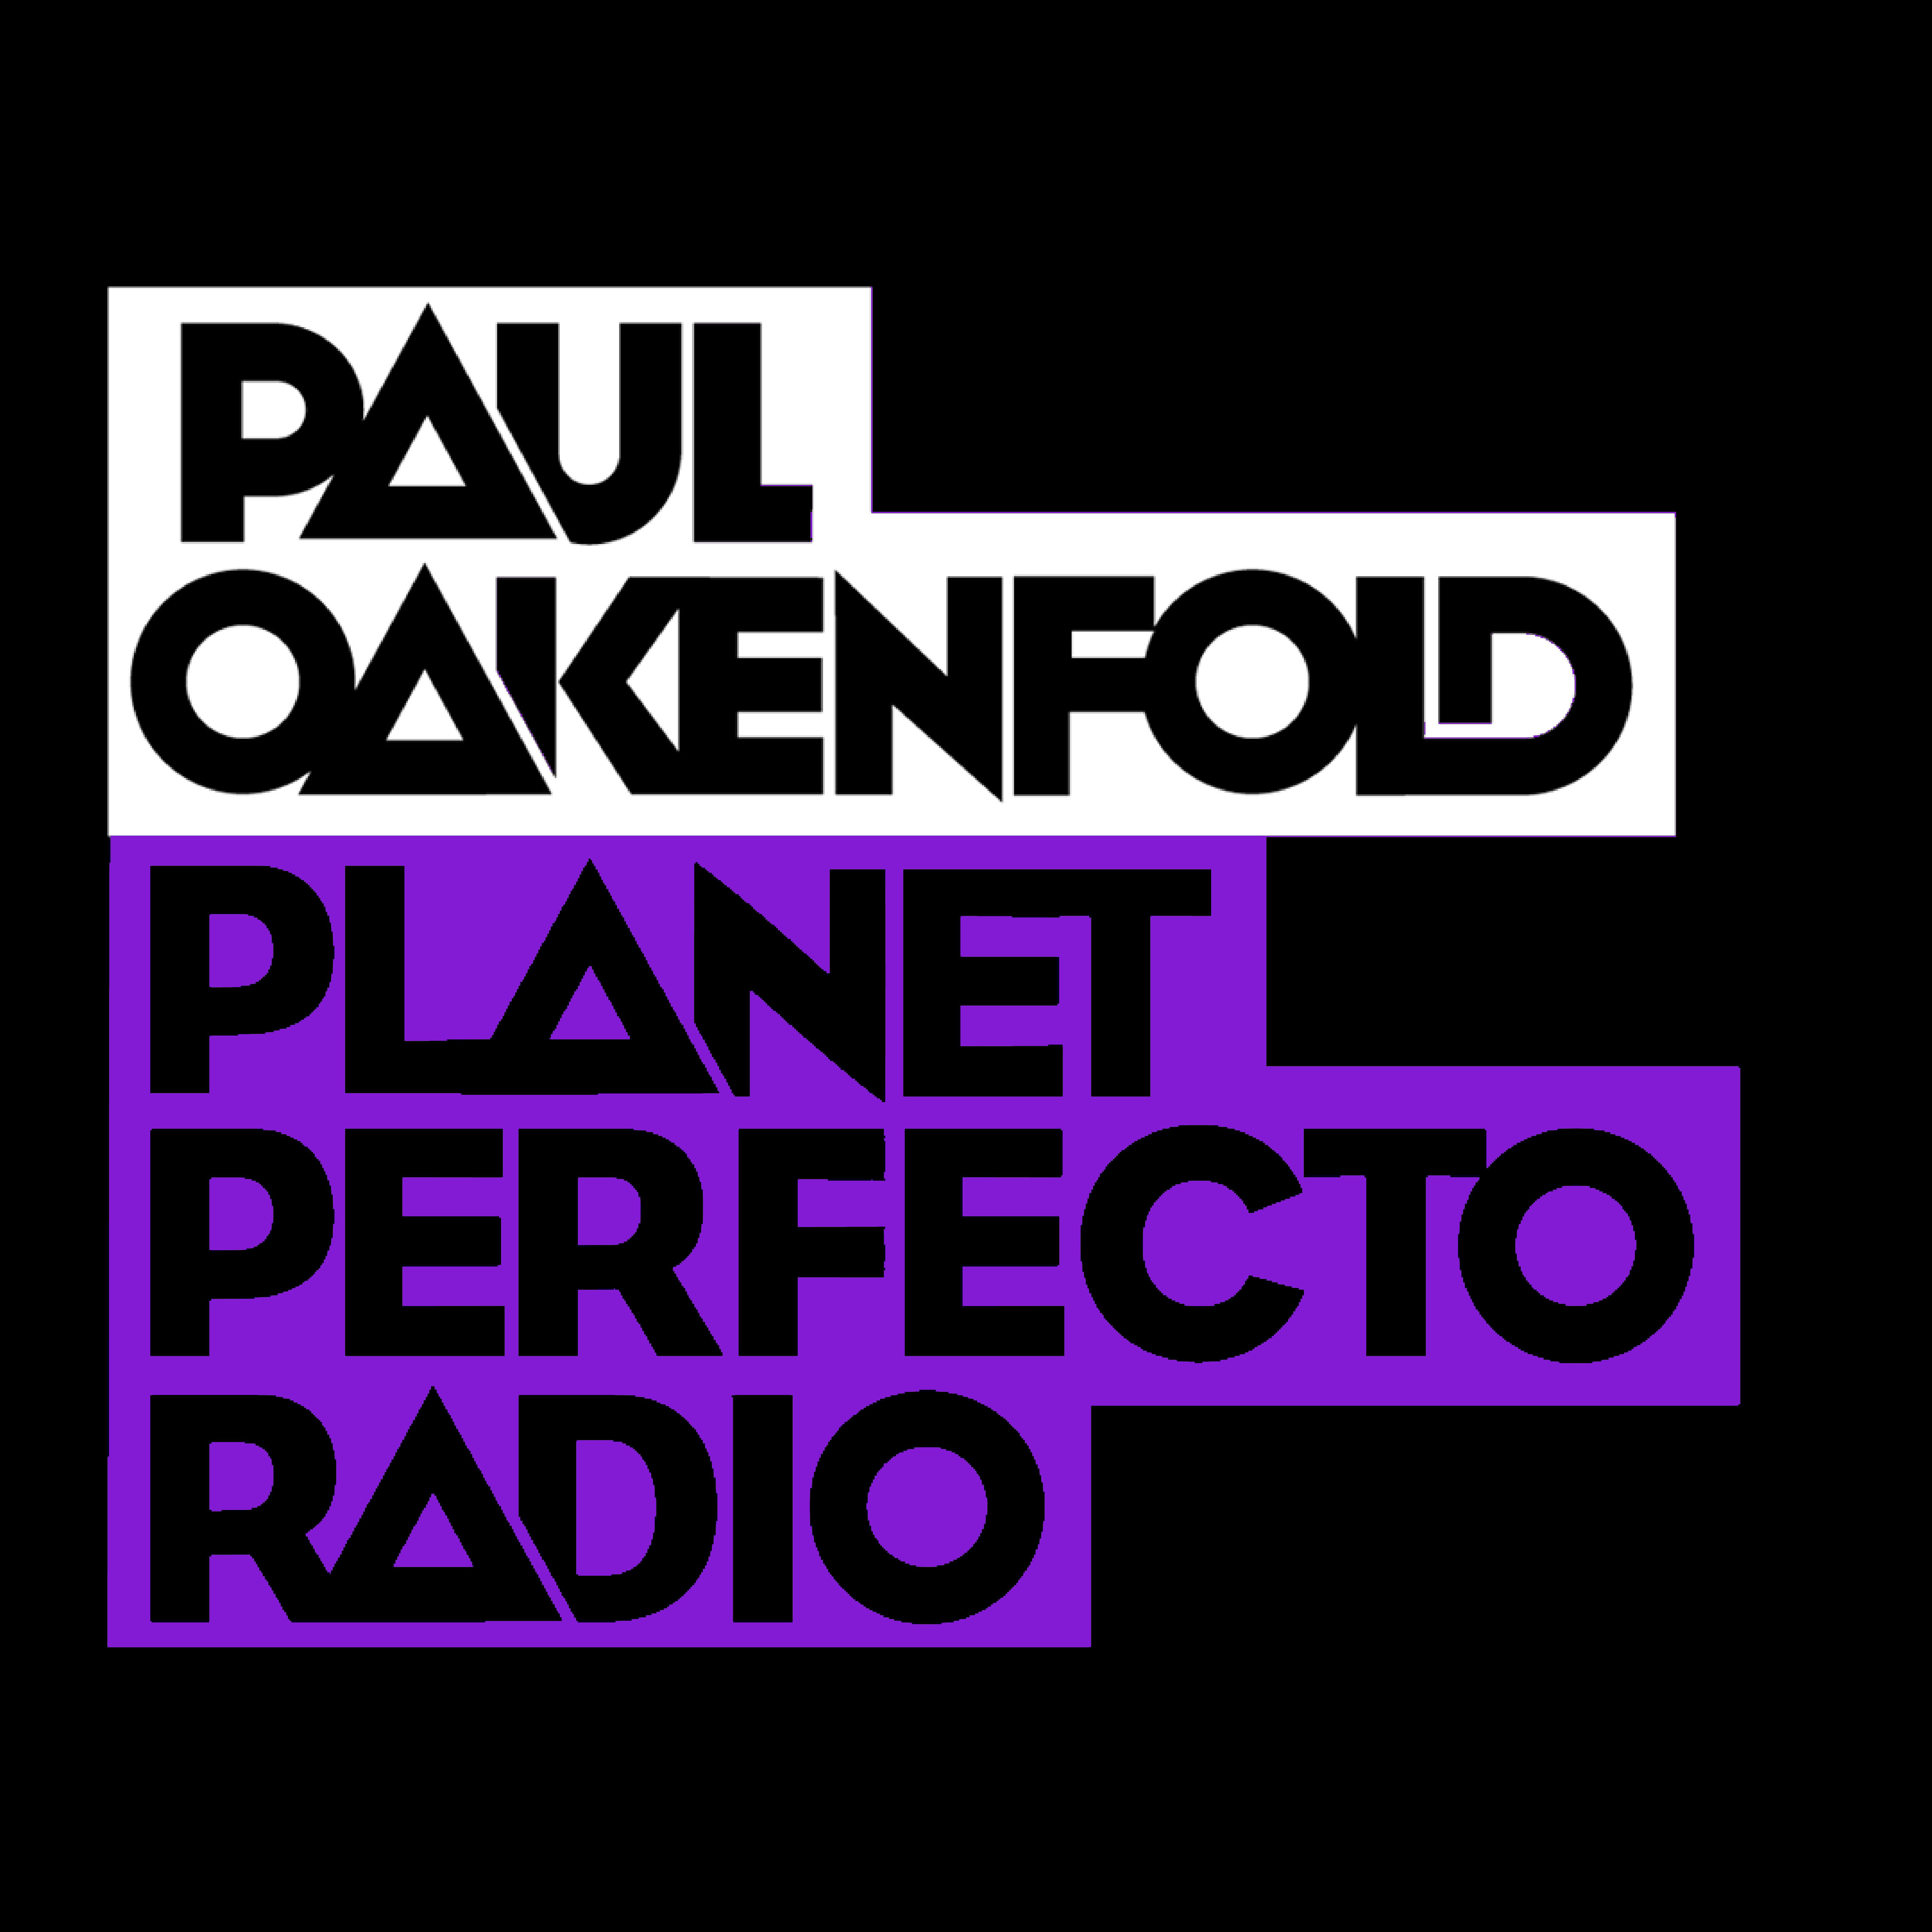 Planet Perfecto Podcast 553 ft. Paul Oakenfold